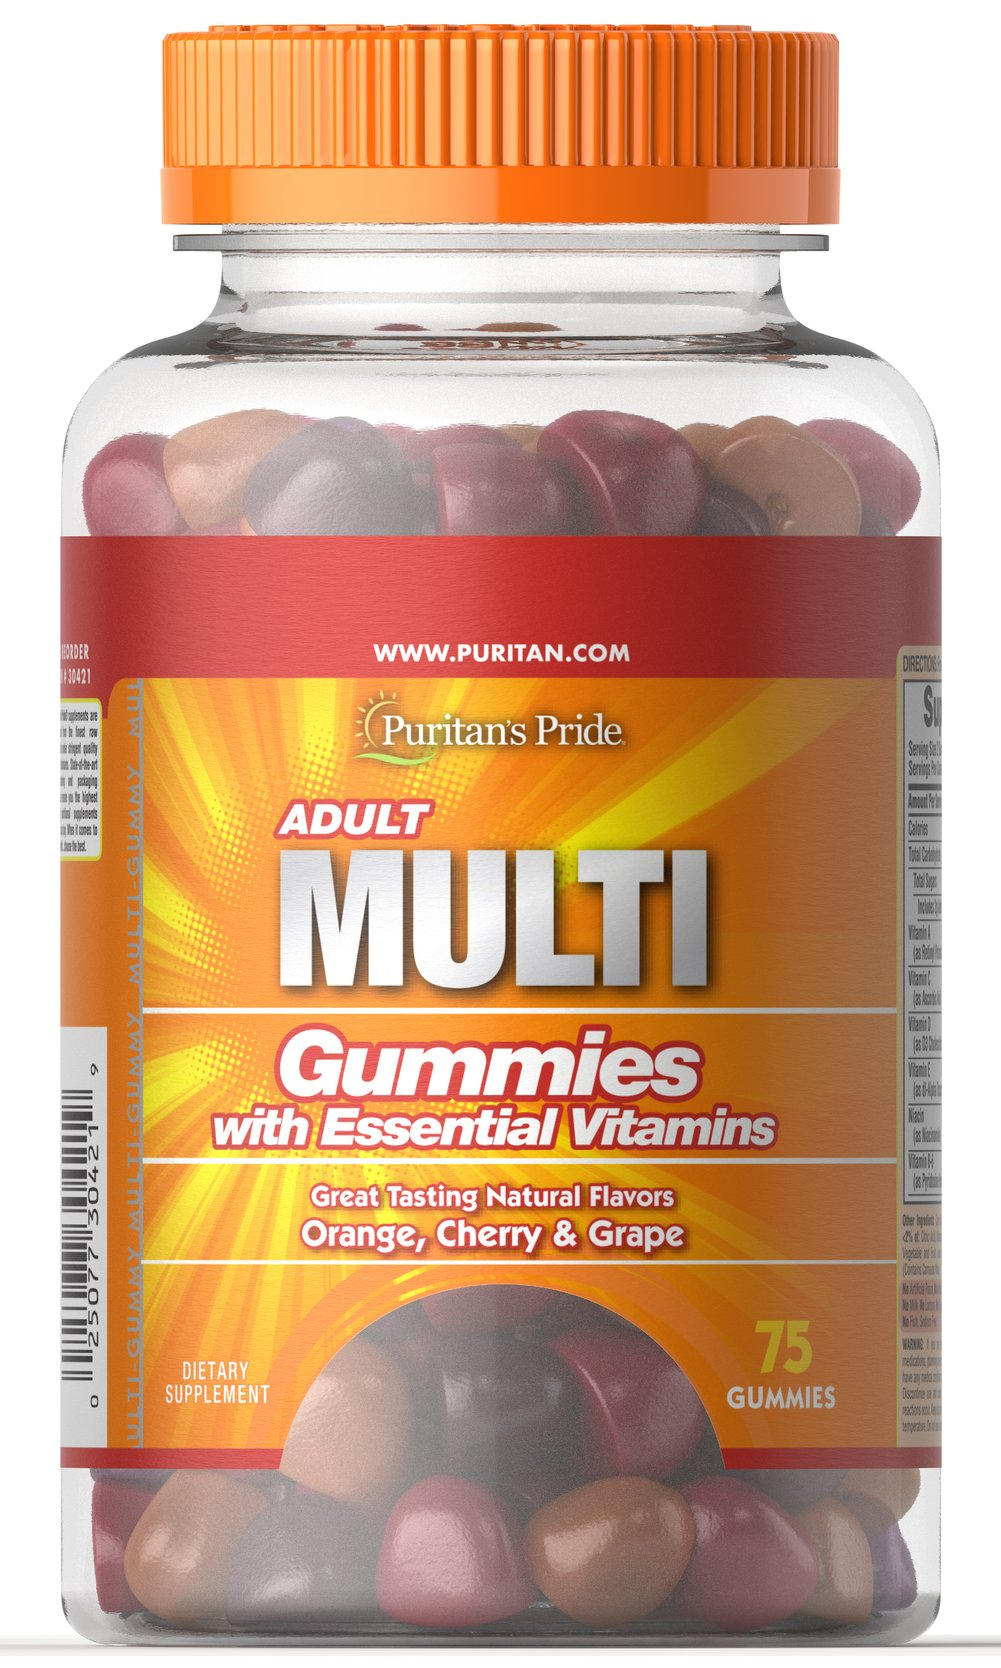 Adult Multivitamin Gummy  75 Gummies  $3.29